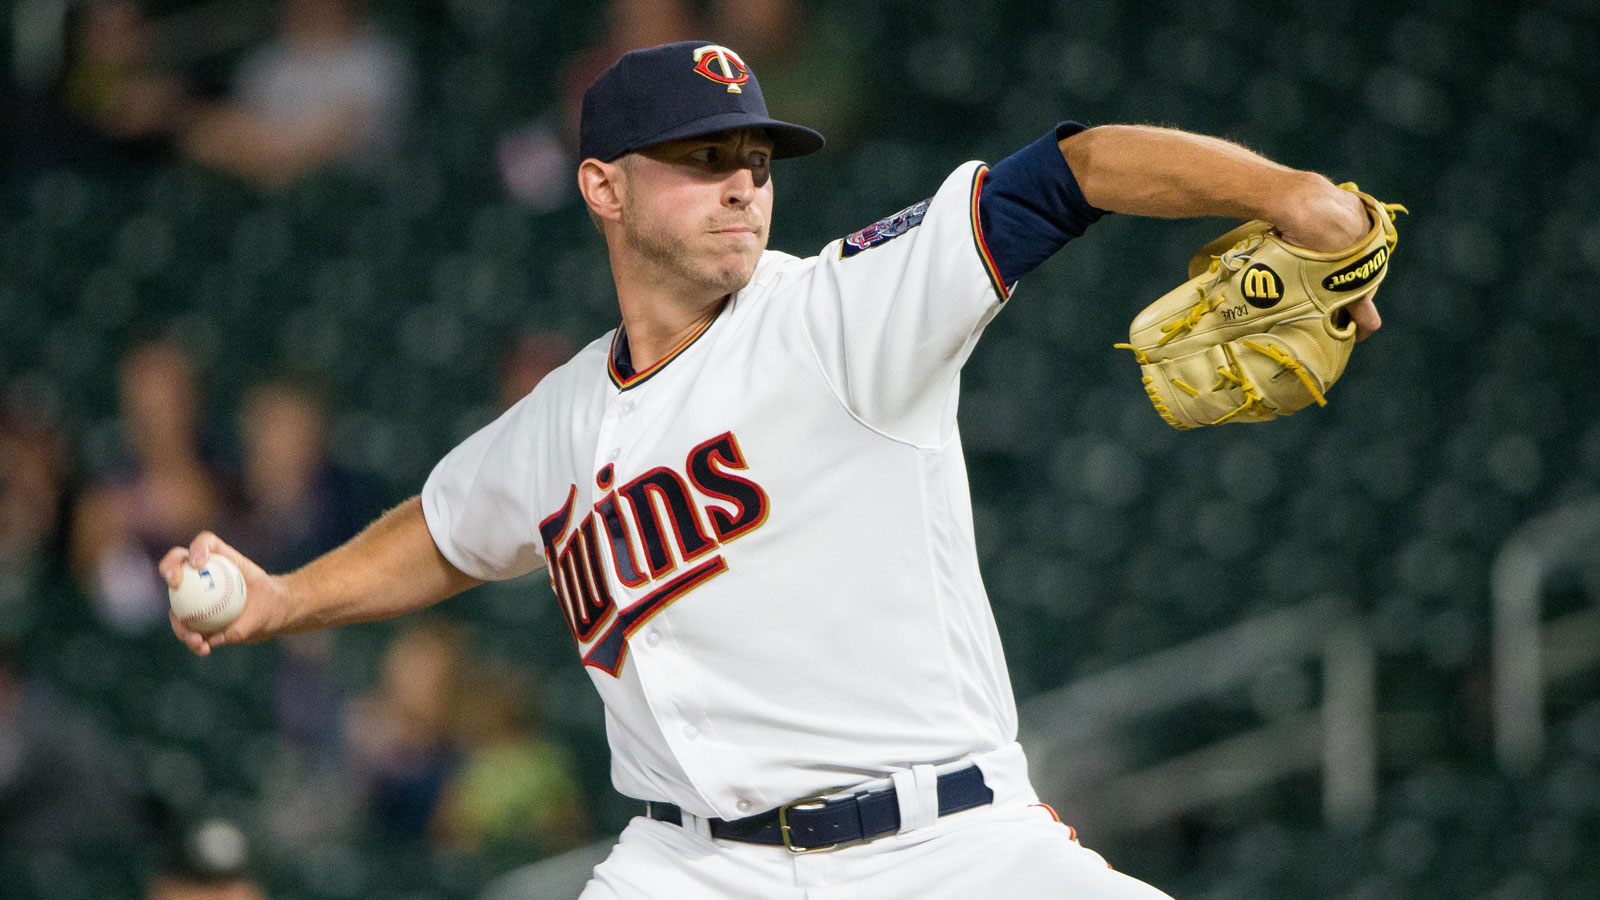 Rays claim right-handed pitcher Oliver Drake off waivers from Twins